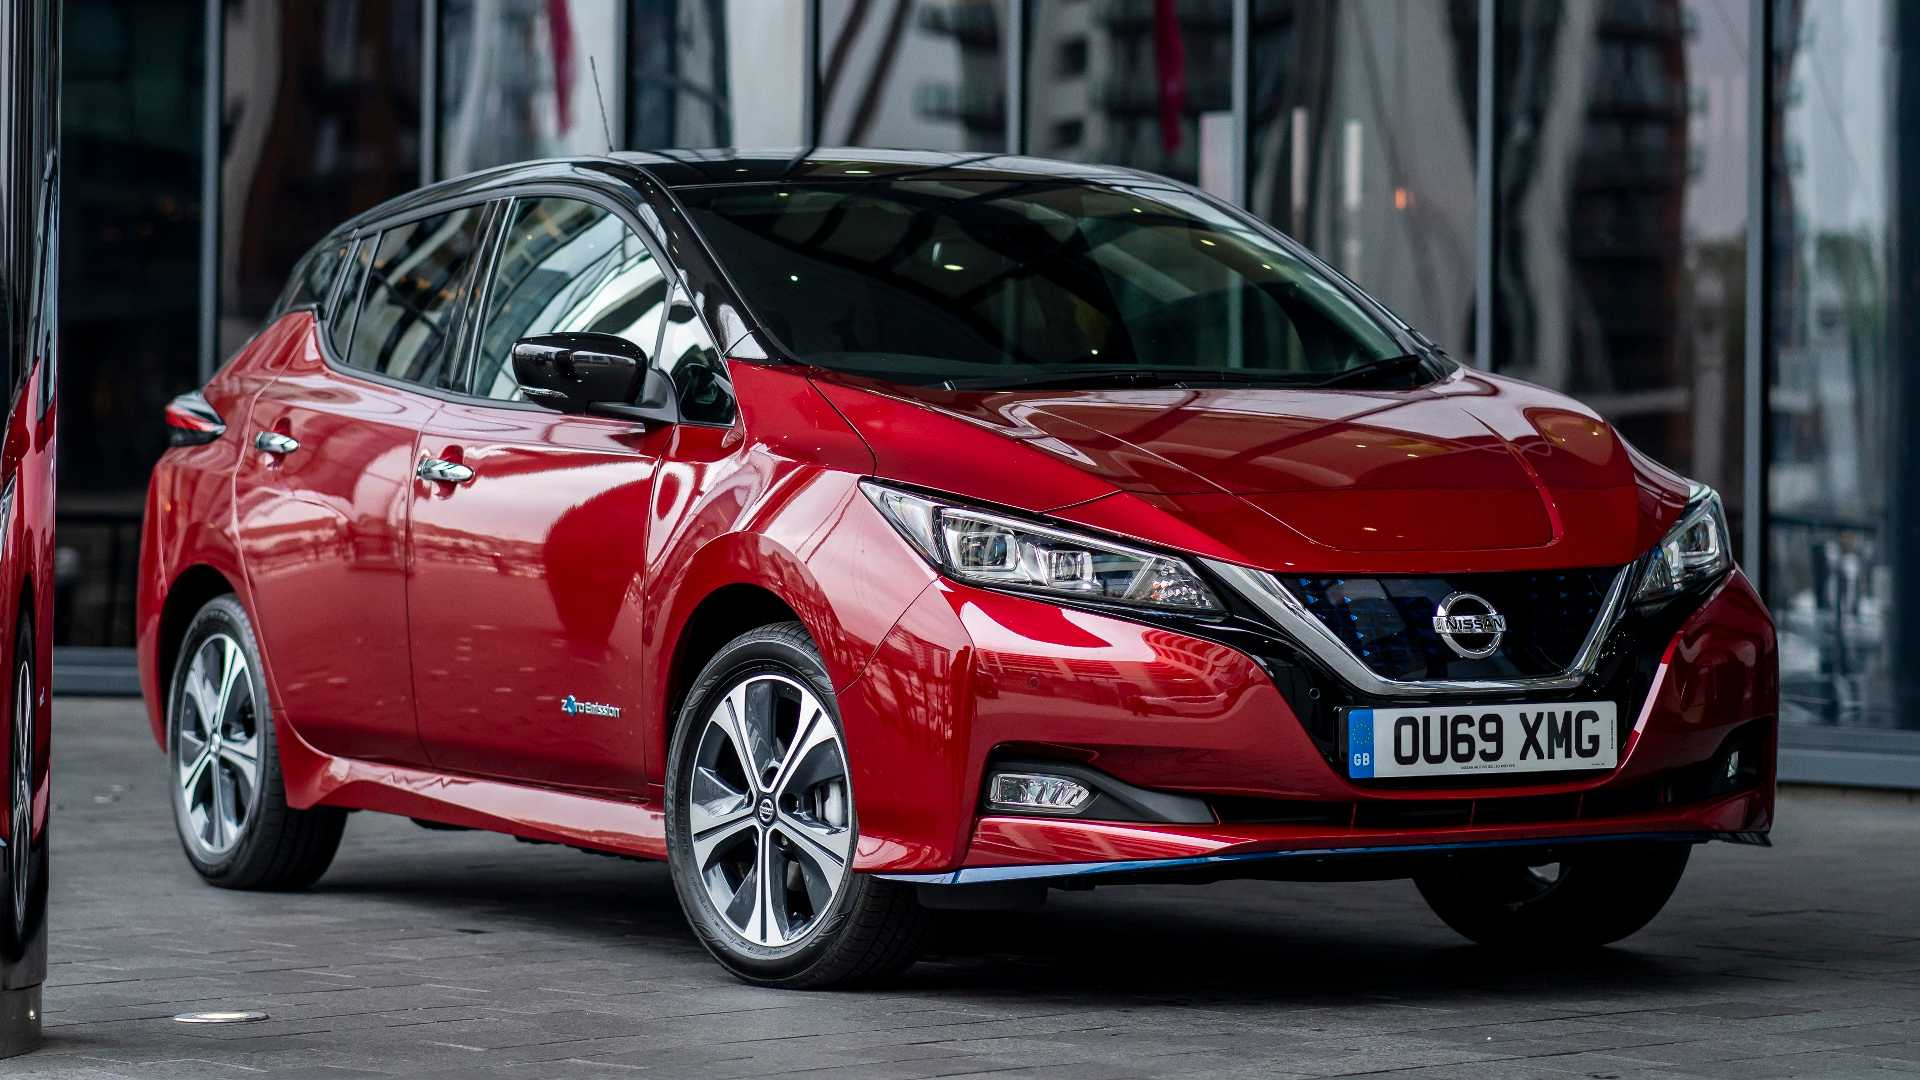 Nissan provides Uber with up to 2,000 Leafs for drivers in London